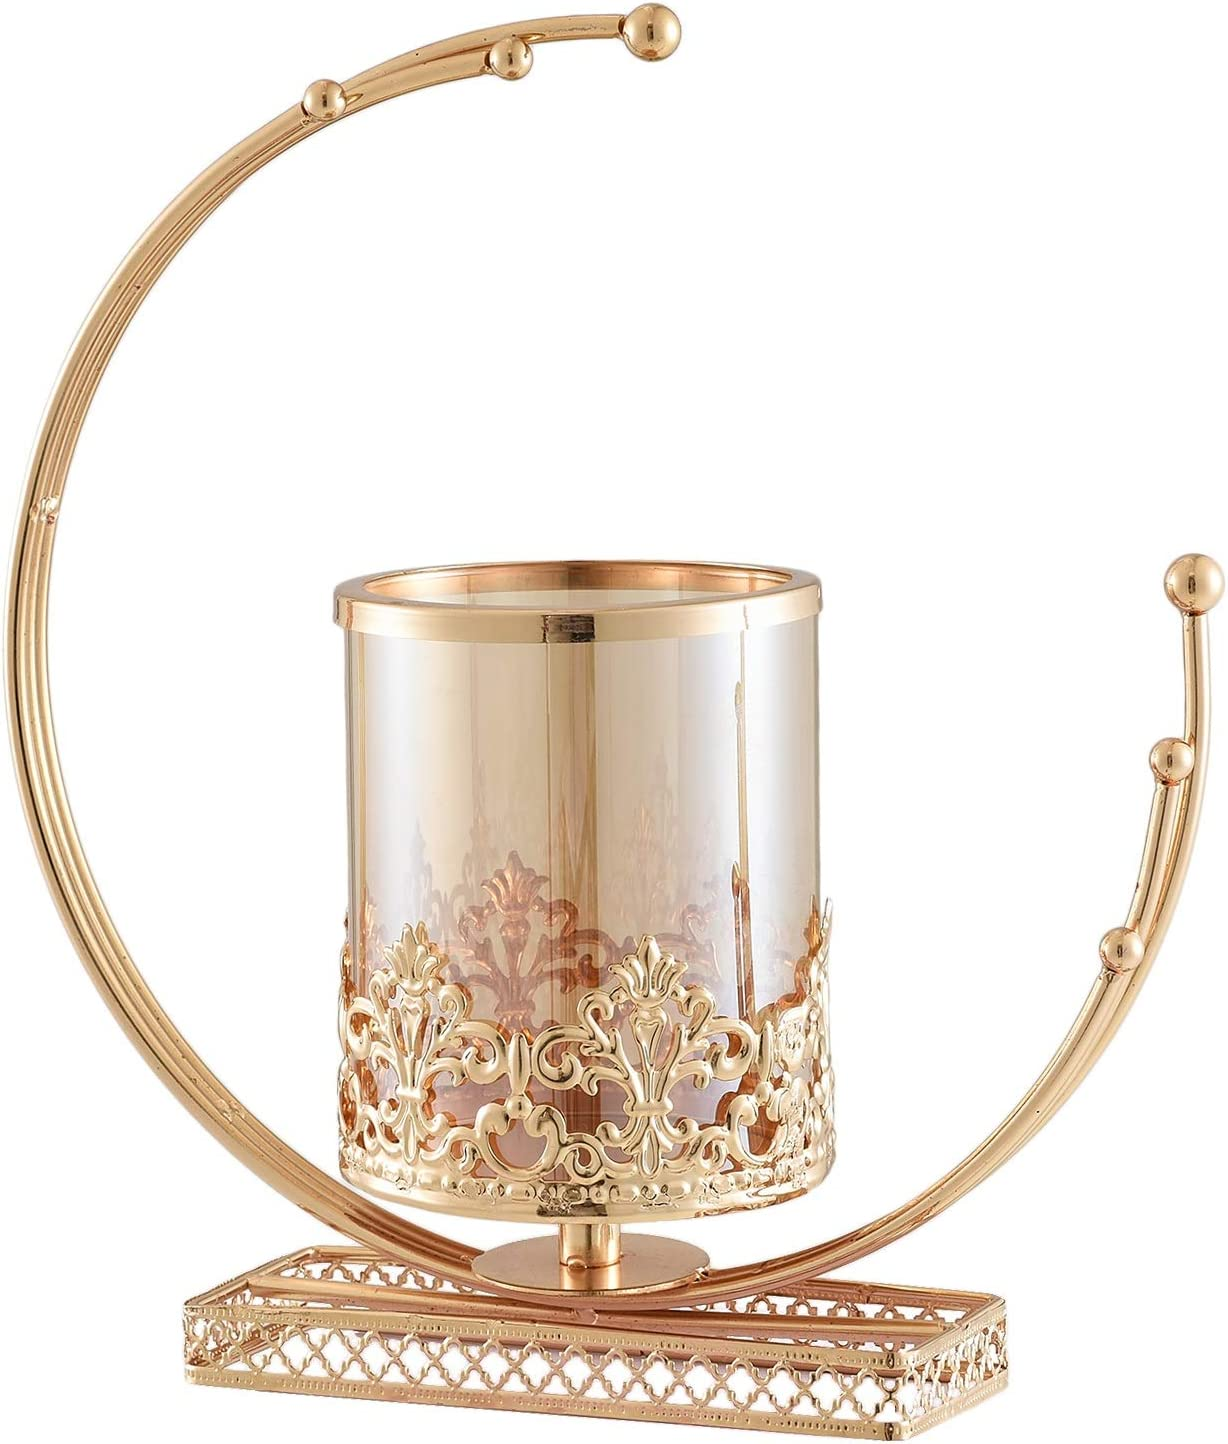 JXHYKJ Heart Moon Iron Stand G Stylish Simple OFFicial shop Holder Our shop most popular Candlestick